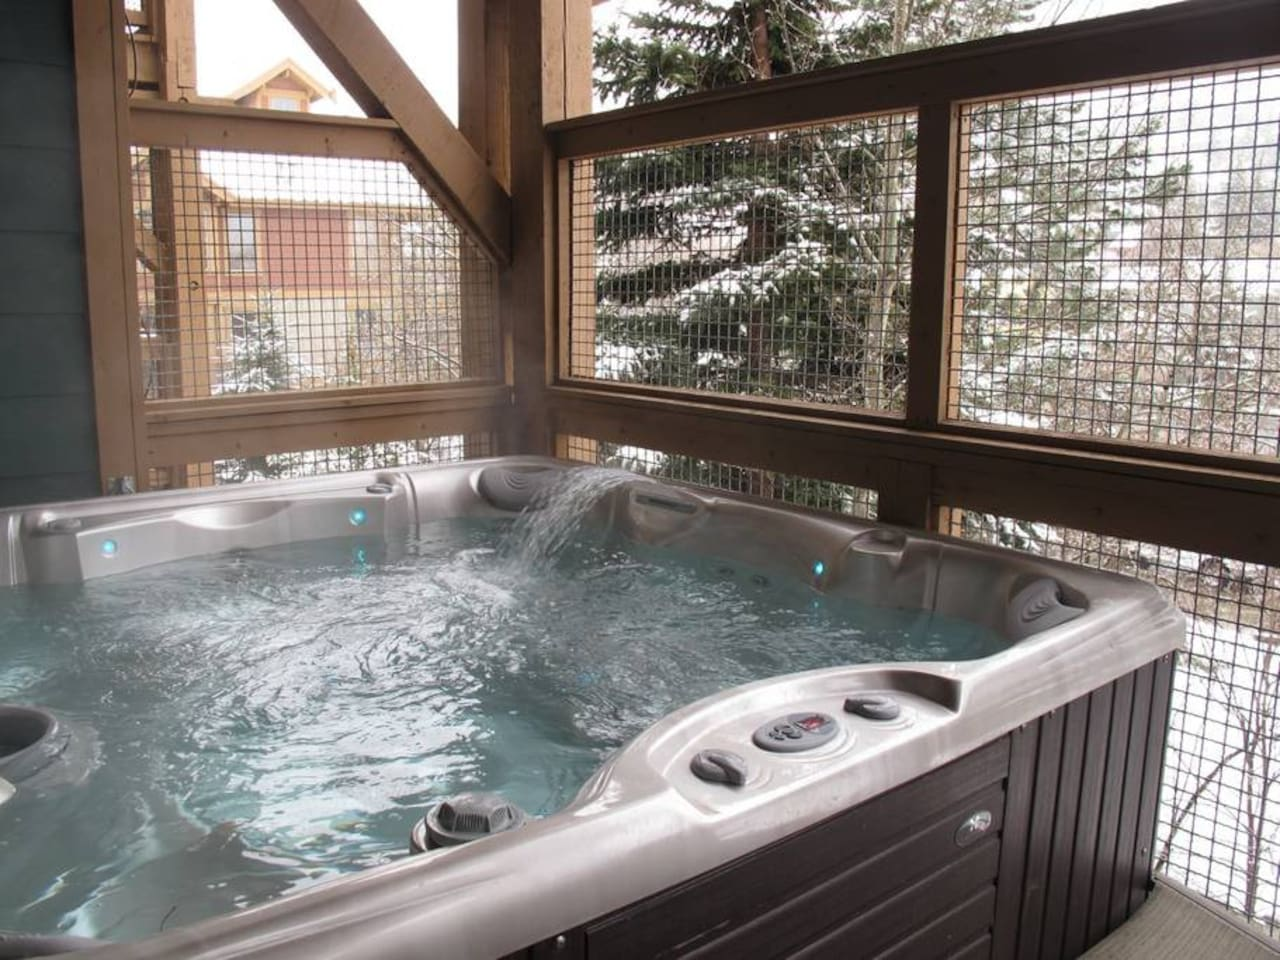 Awesome jacuzzi on deck!